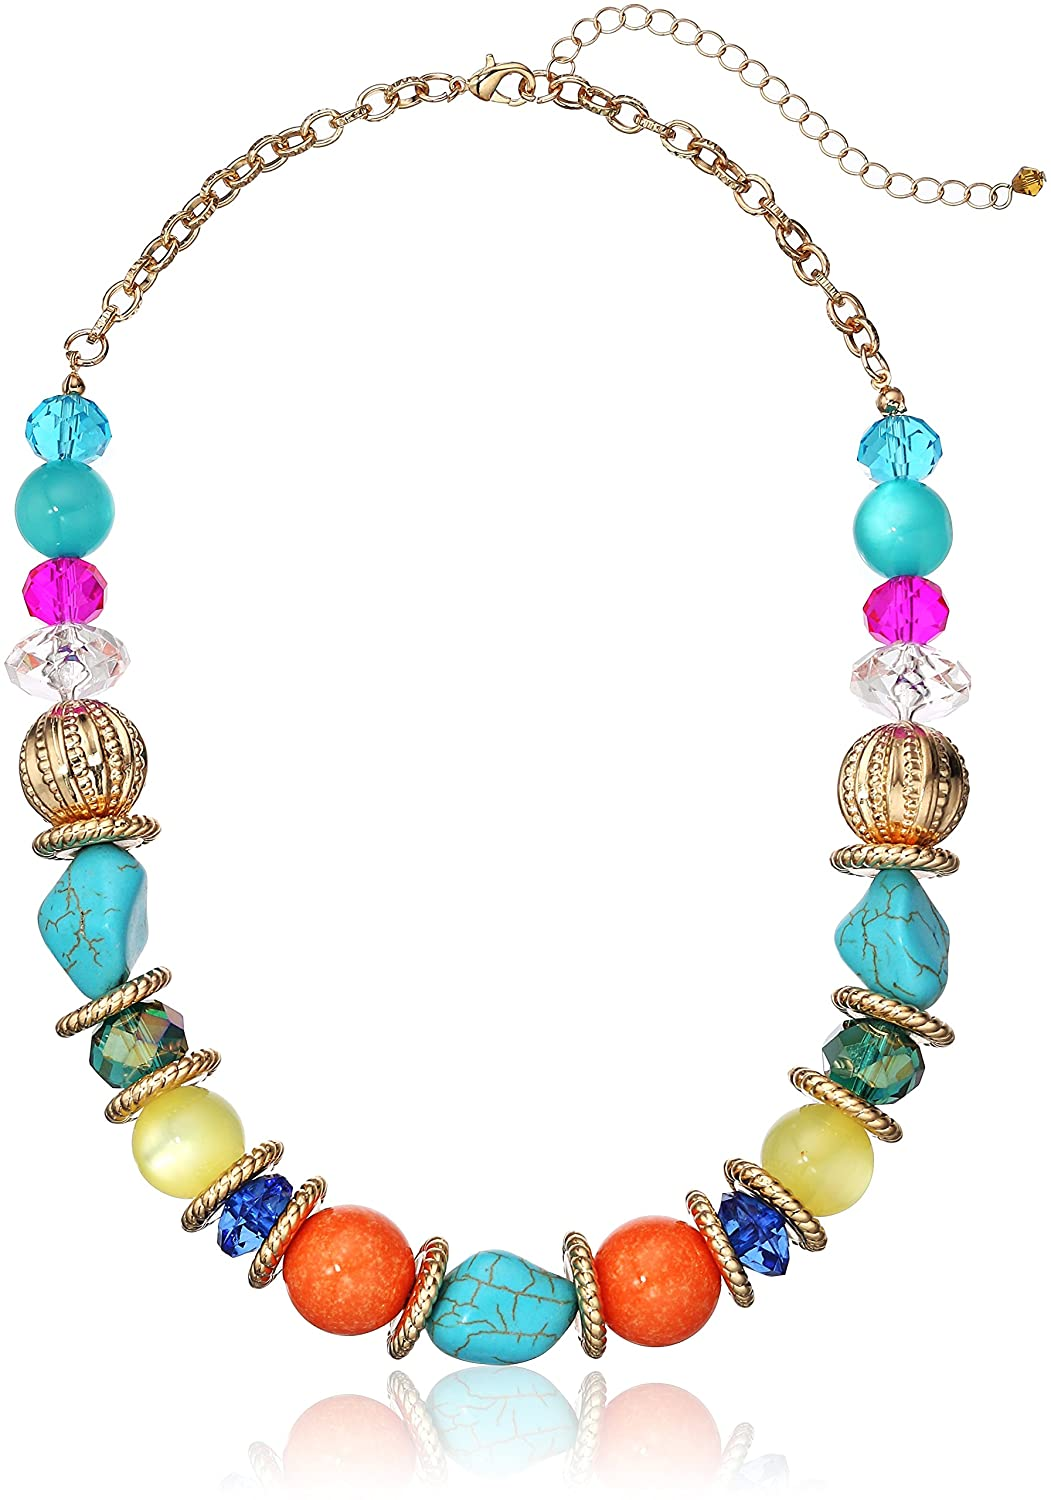 Fashion Mulit-Colored Beaded Strand Necklace, 17 + 3 17 + 3 Amazon Collection 102401